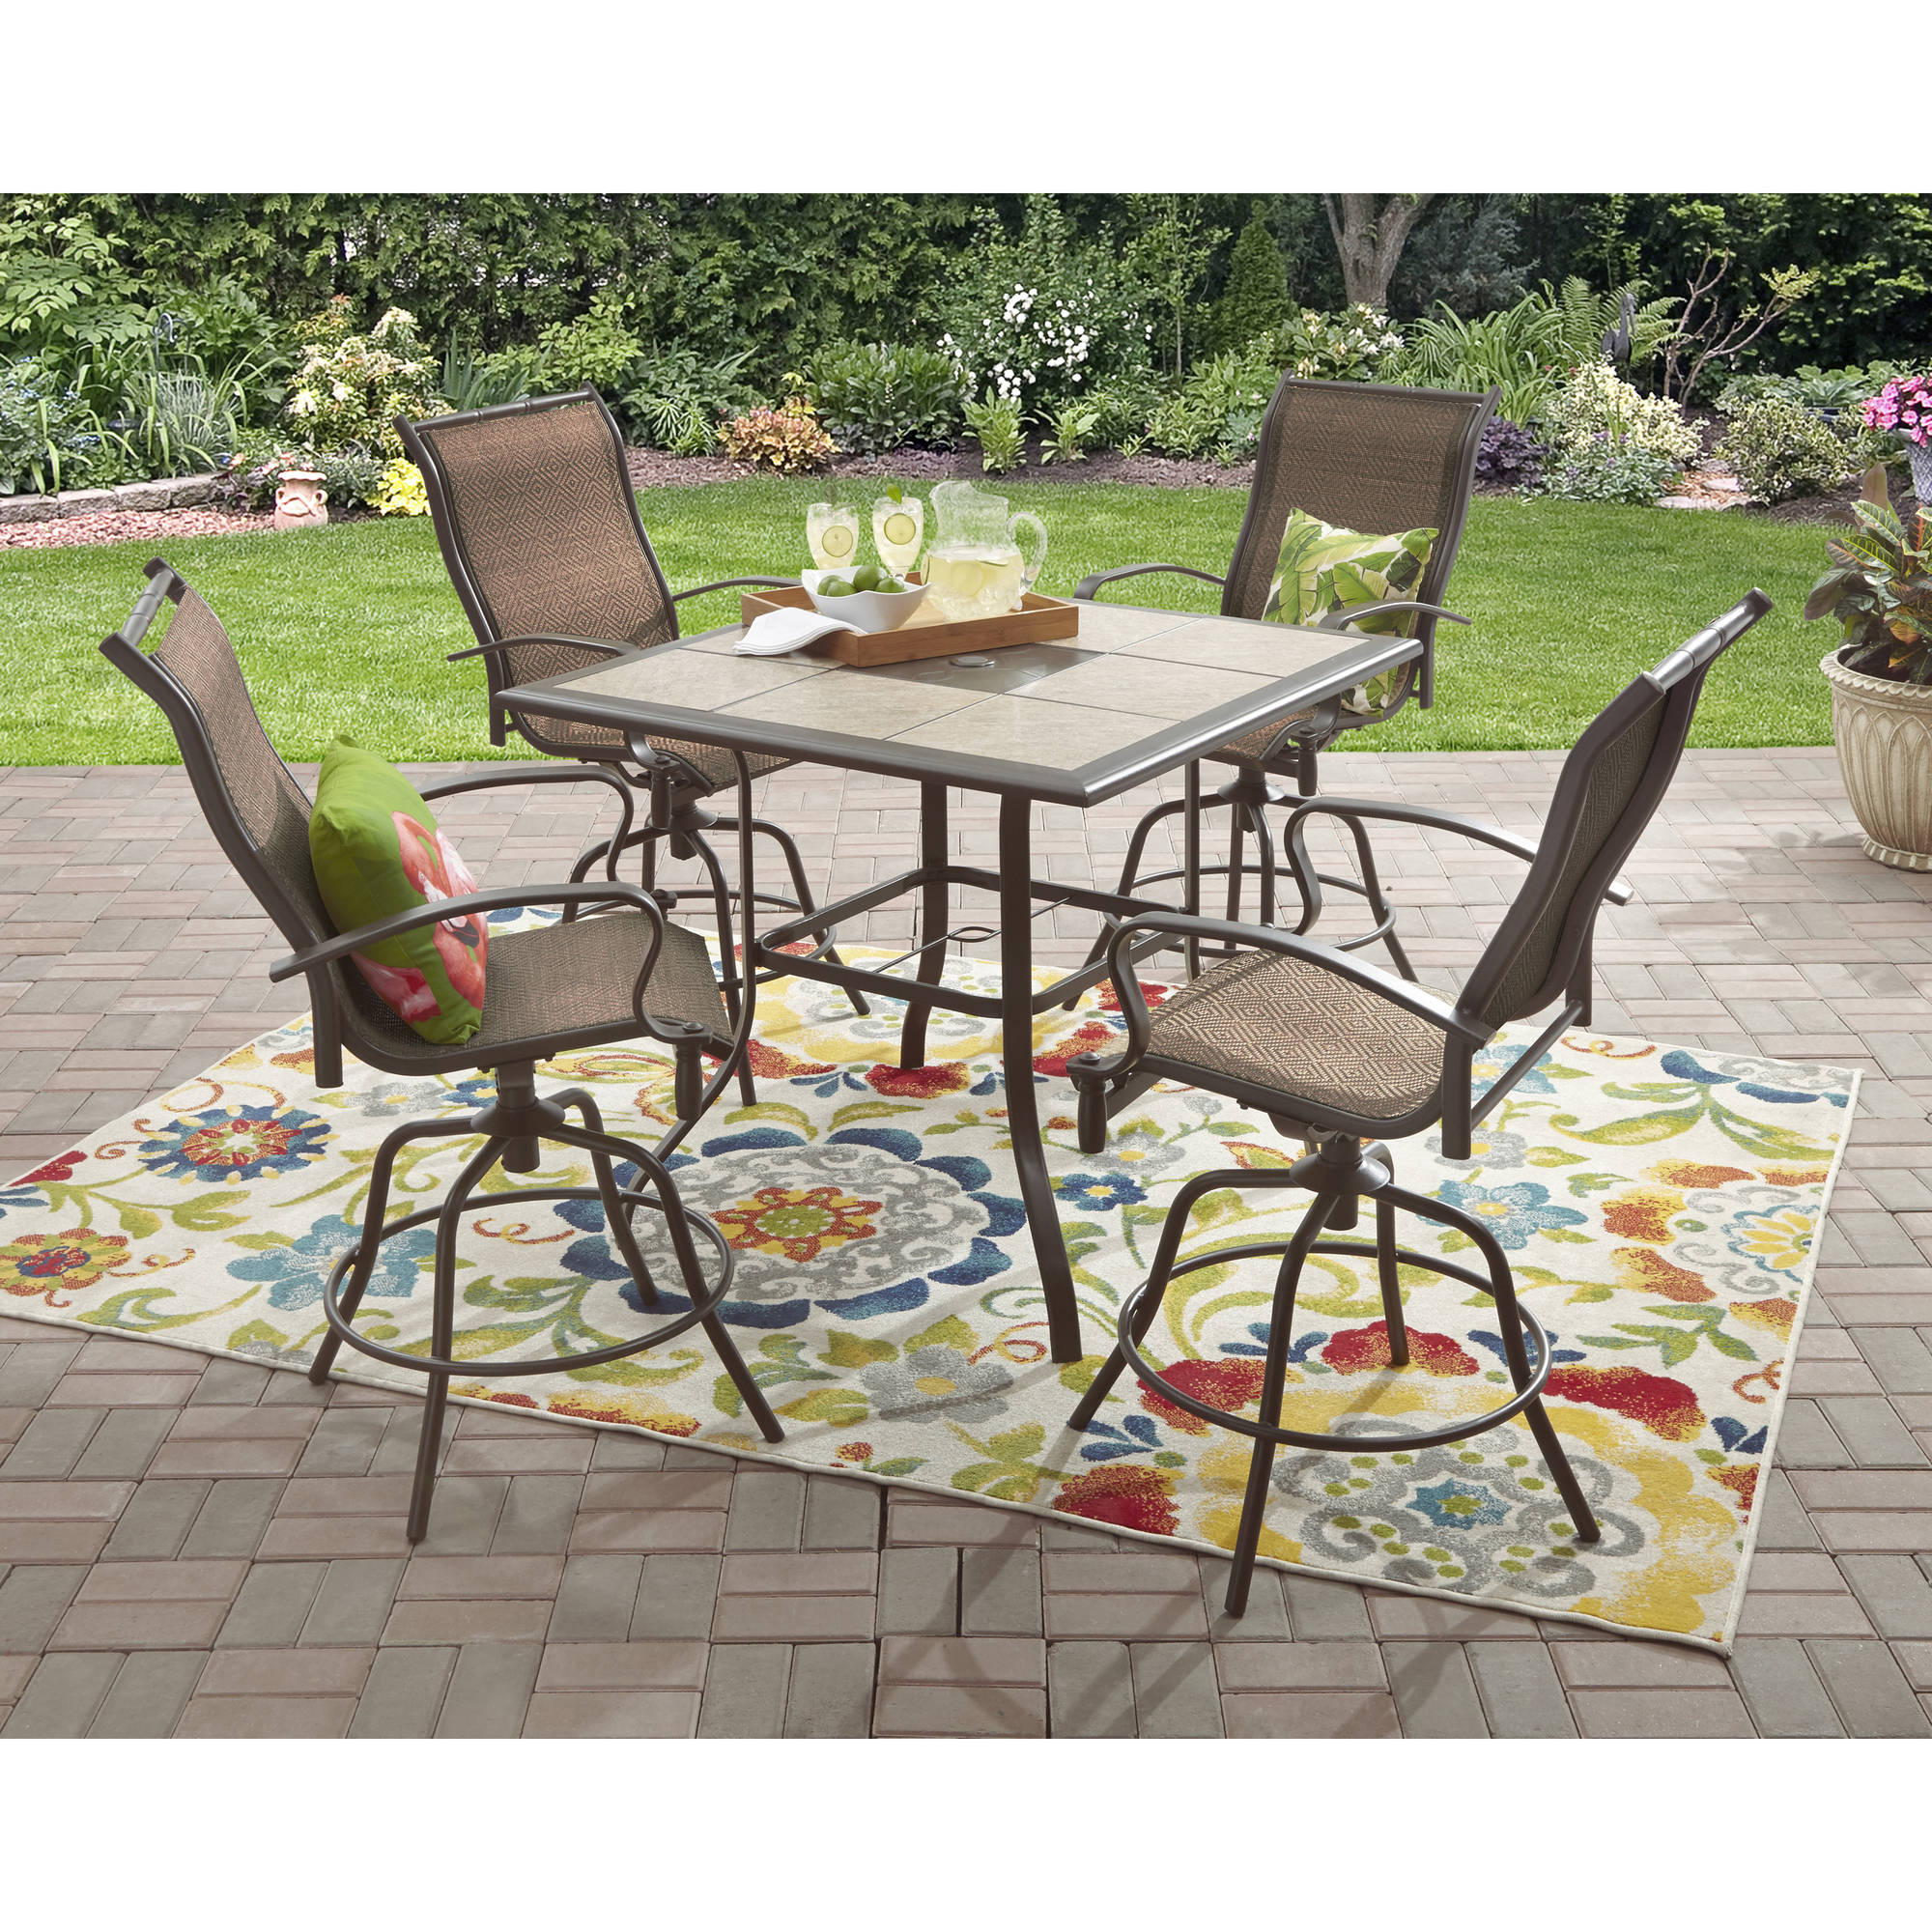 Mainstays Wesley Creek 5 Piece Counter Heights Dining Set